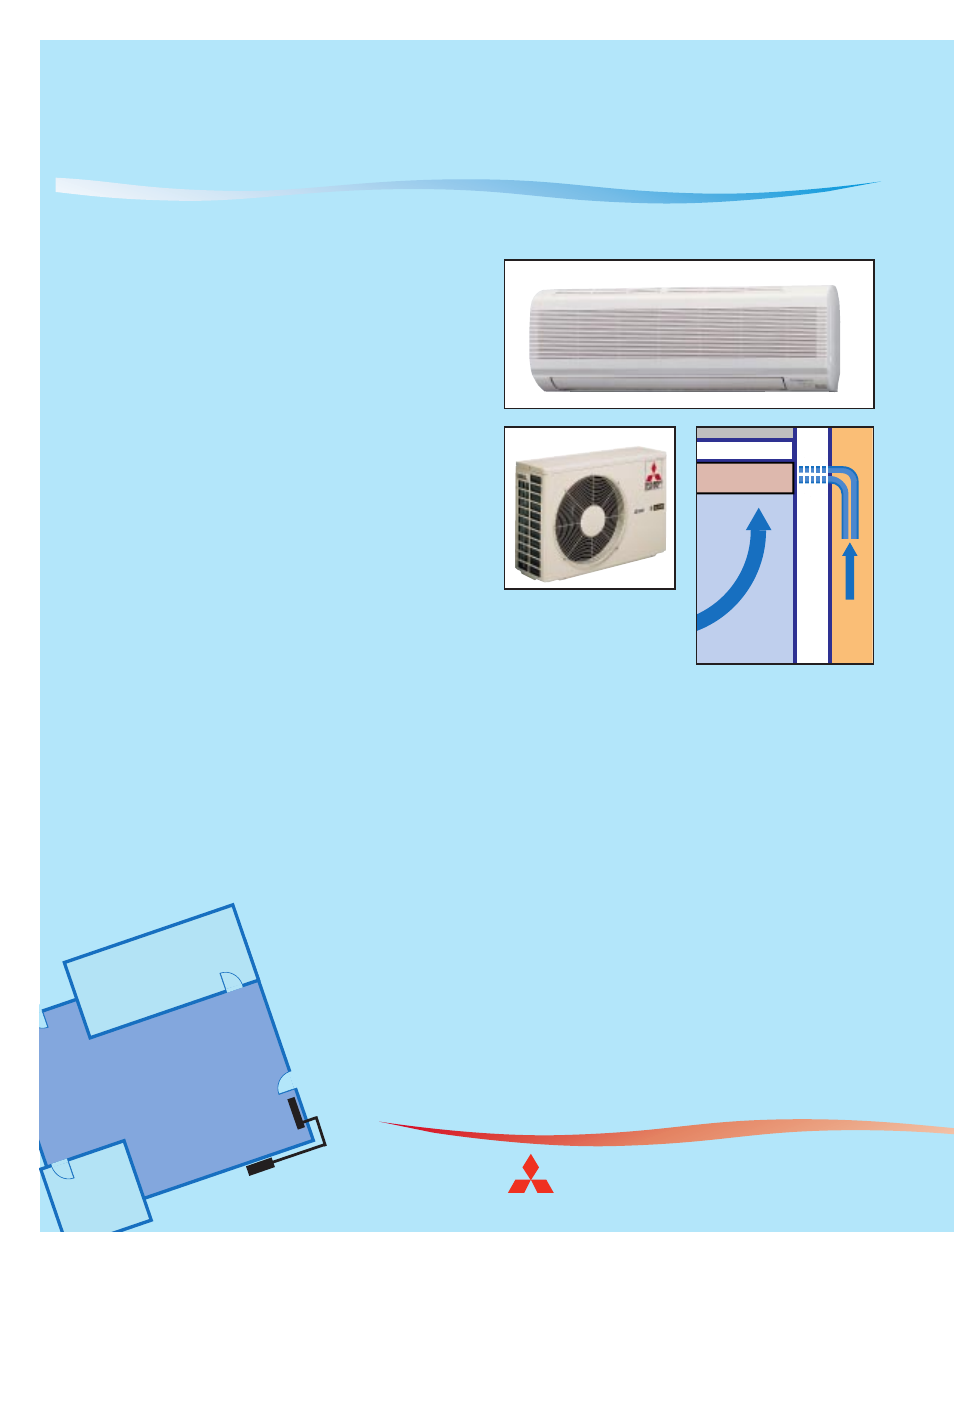 Mrslim Ductless Air Conditioners And Heat Pumps Comfort Made Electronics At Glance Lets Innovate Page 2 Simple Mitsubishi Electric Mr Slim Pc24ek User Manual 11